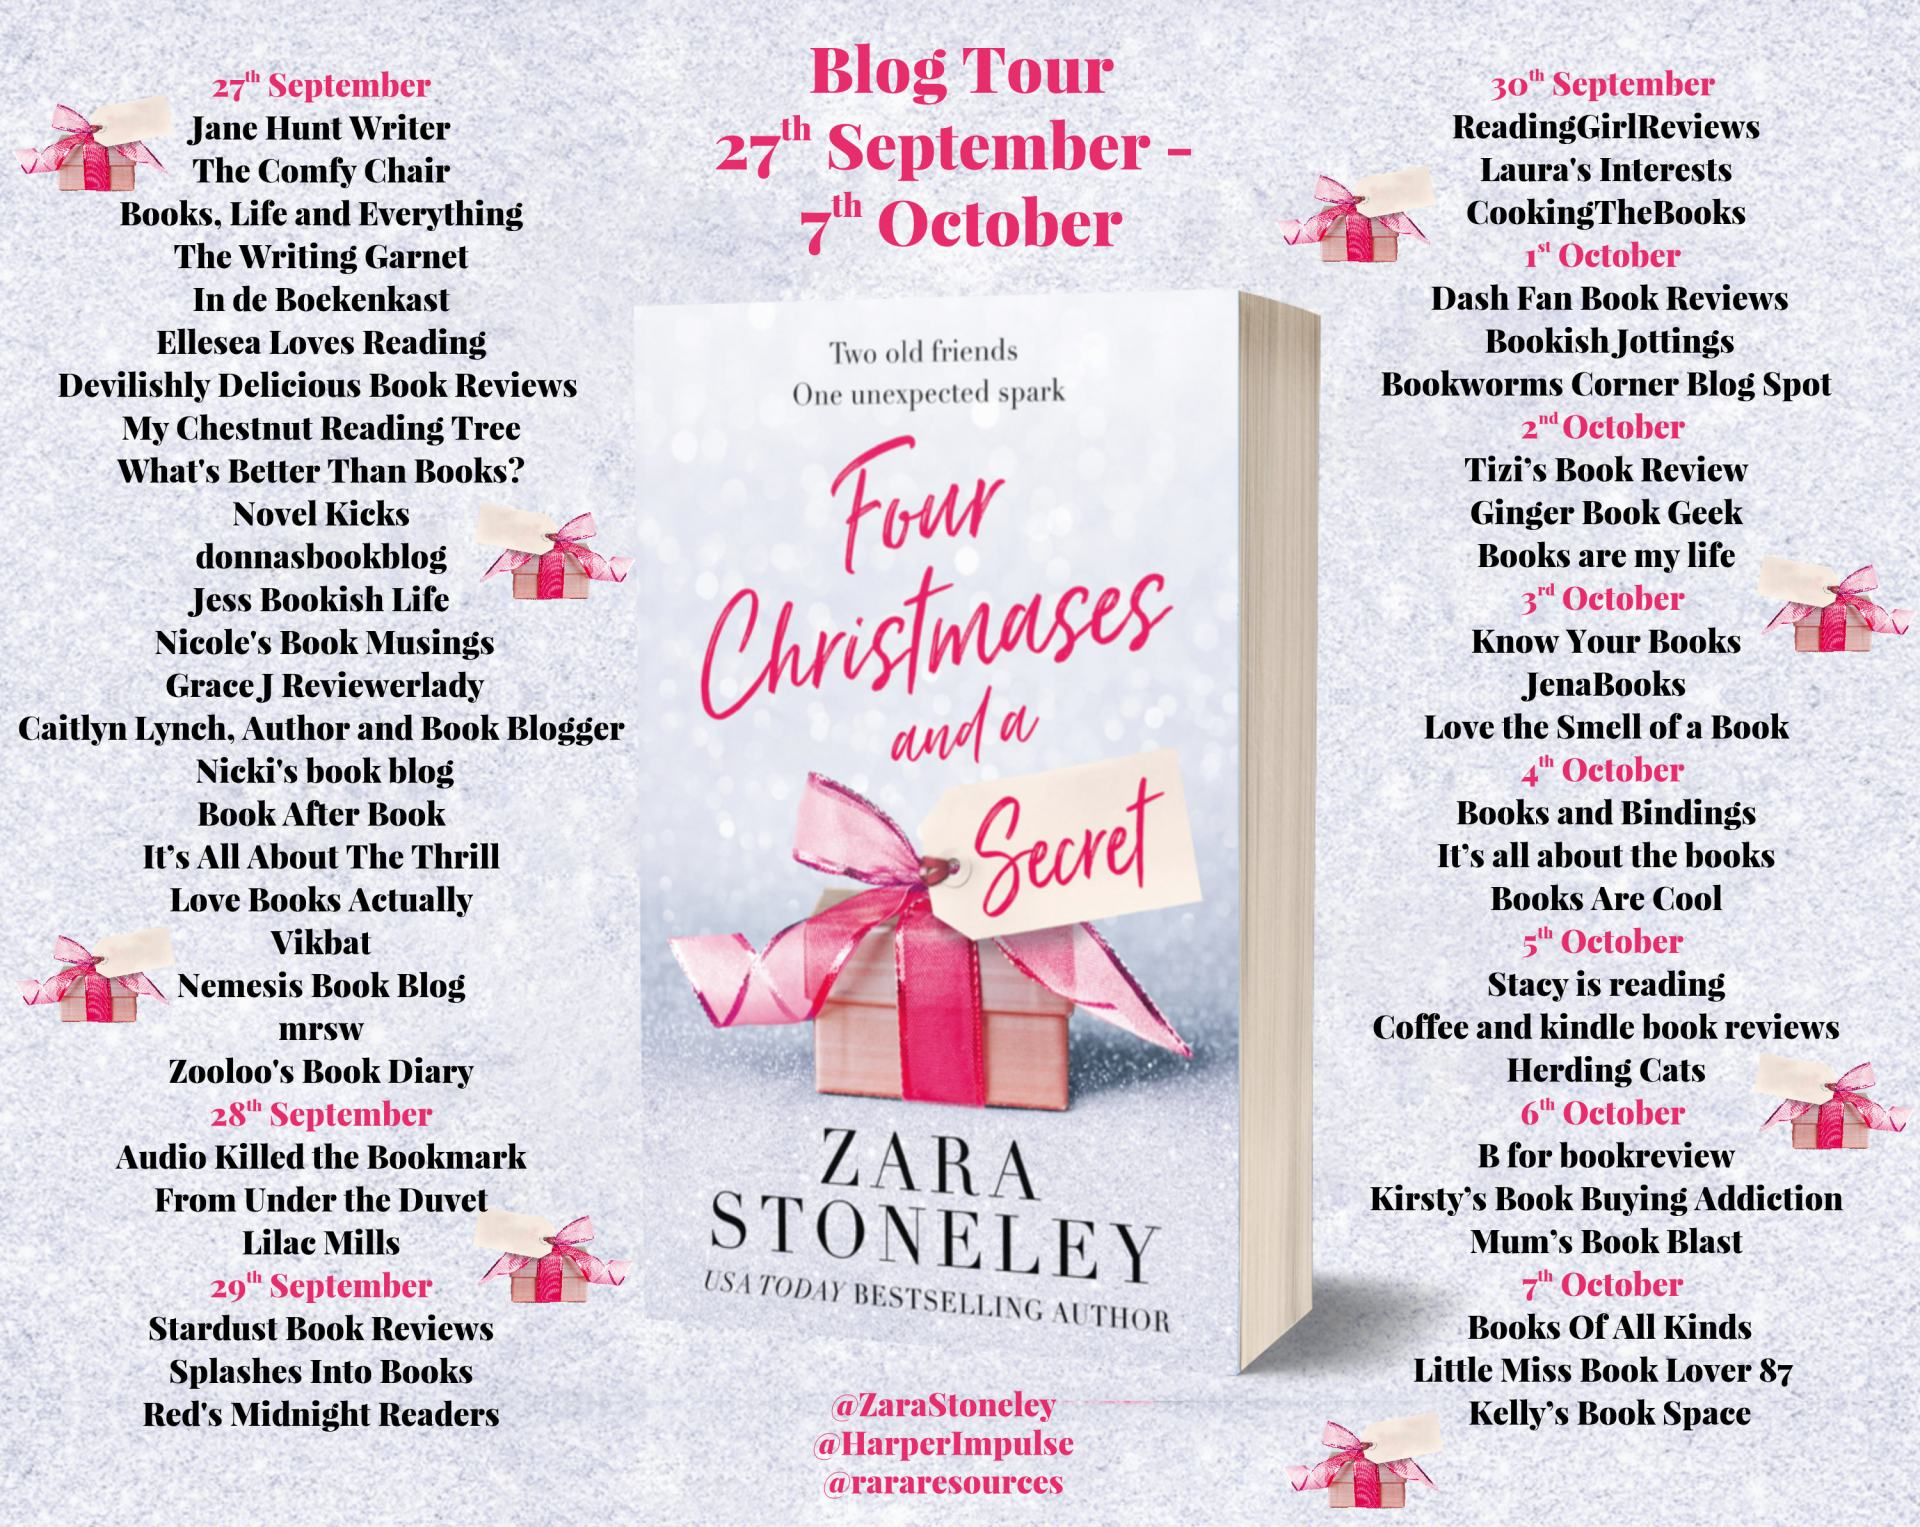 ***#BookReview by Four Christmases and a Secret by Zara Stoneley @Zarastoneley @rararesources @harperimpulse